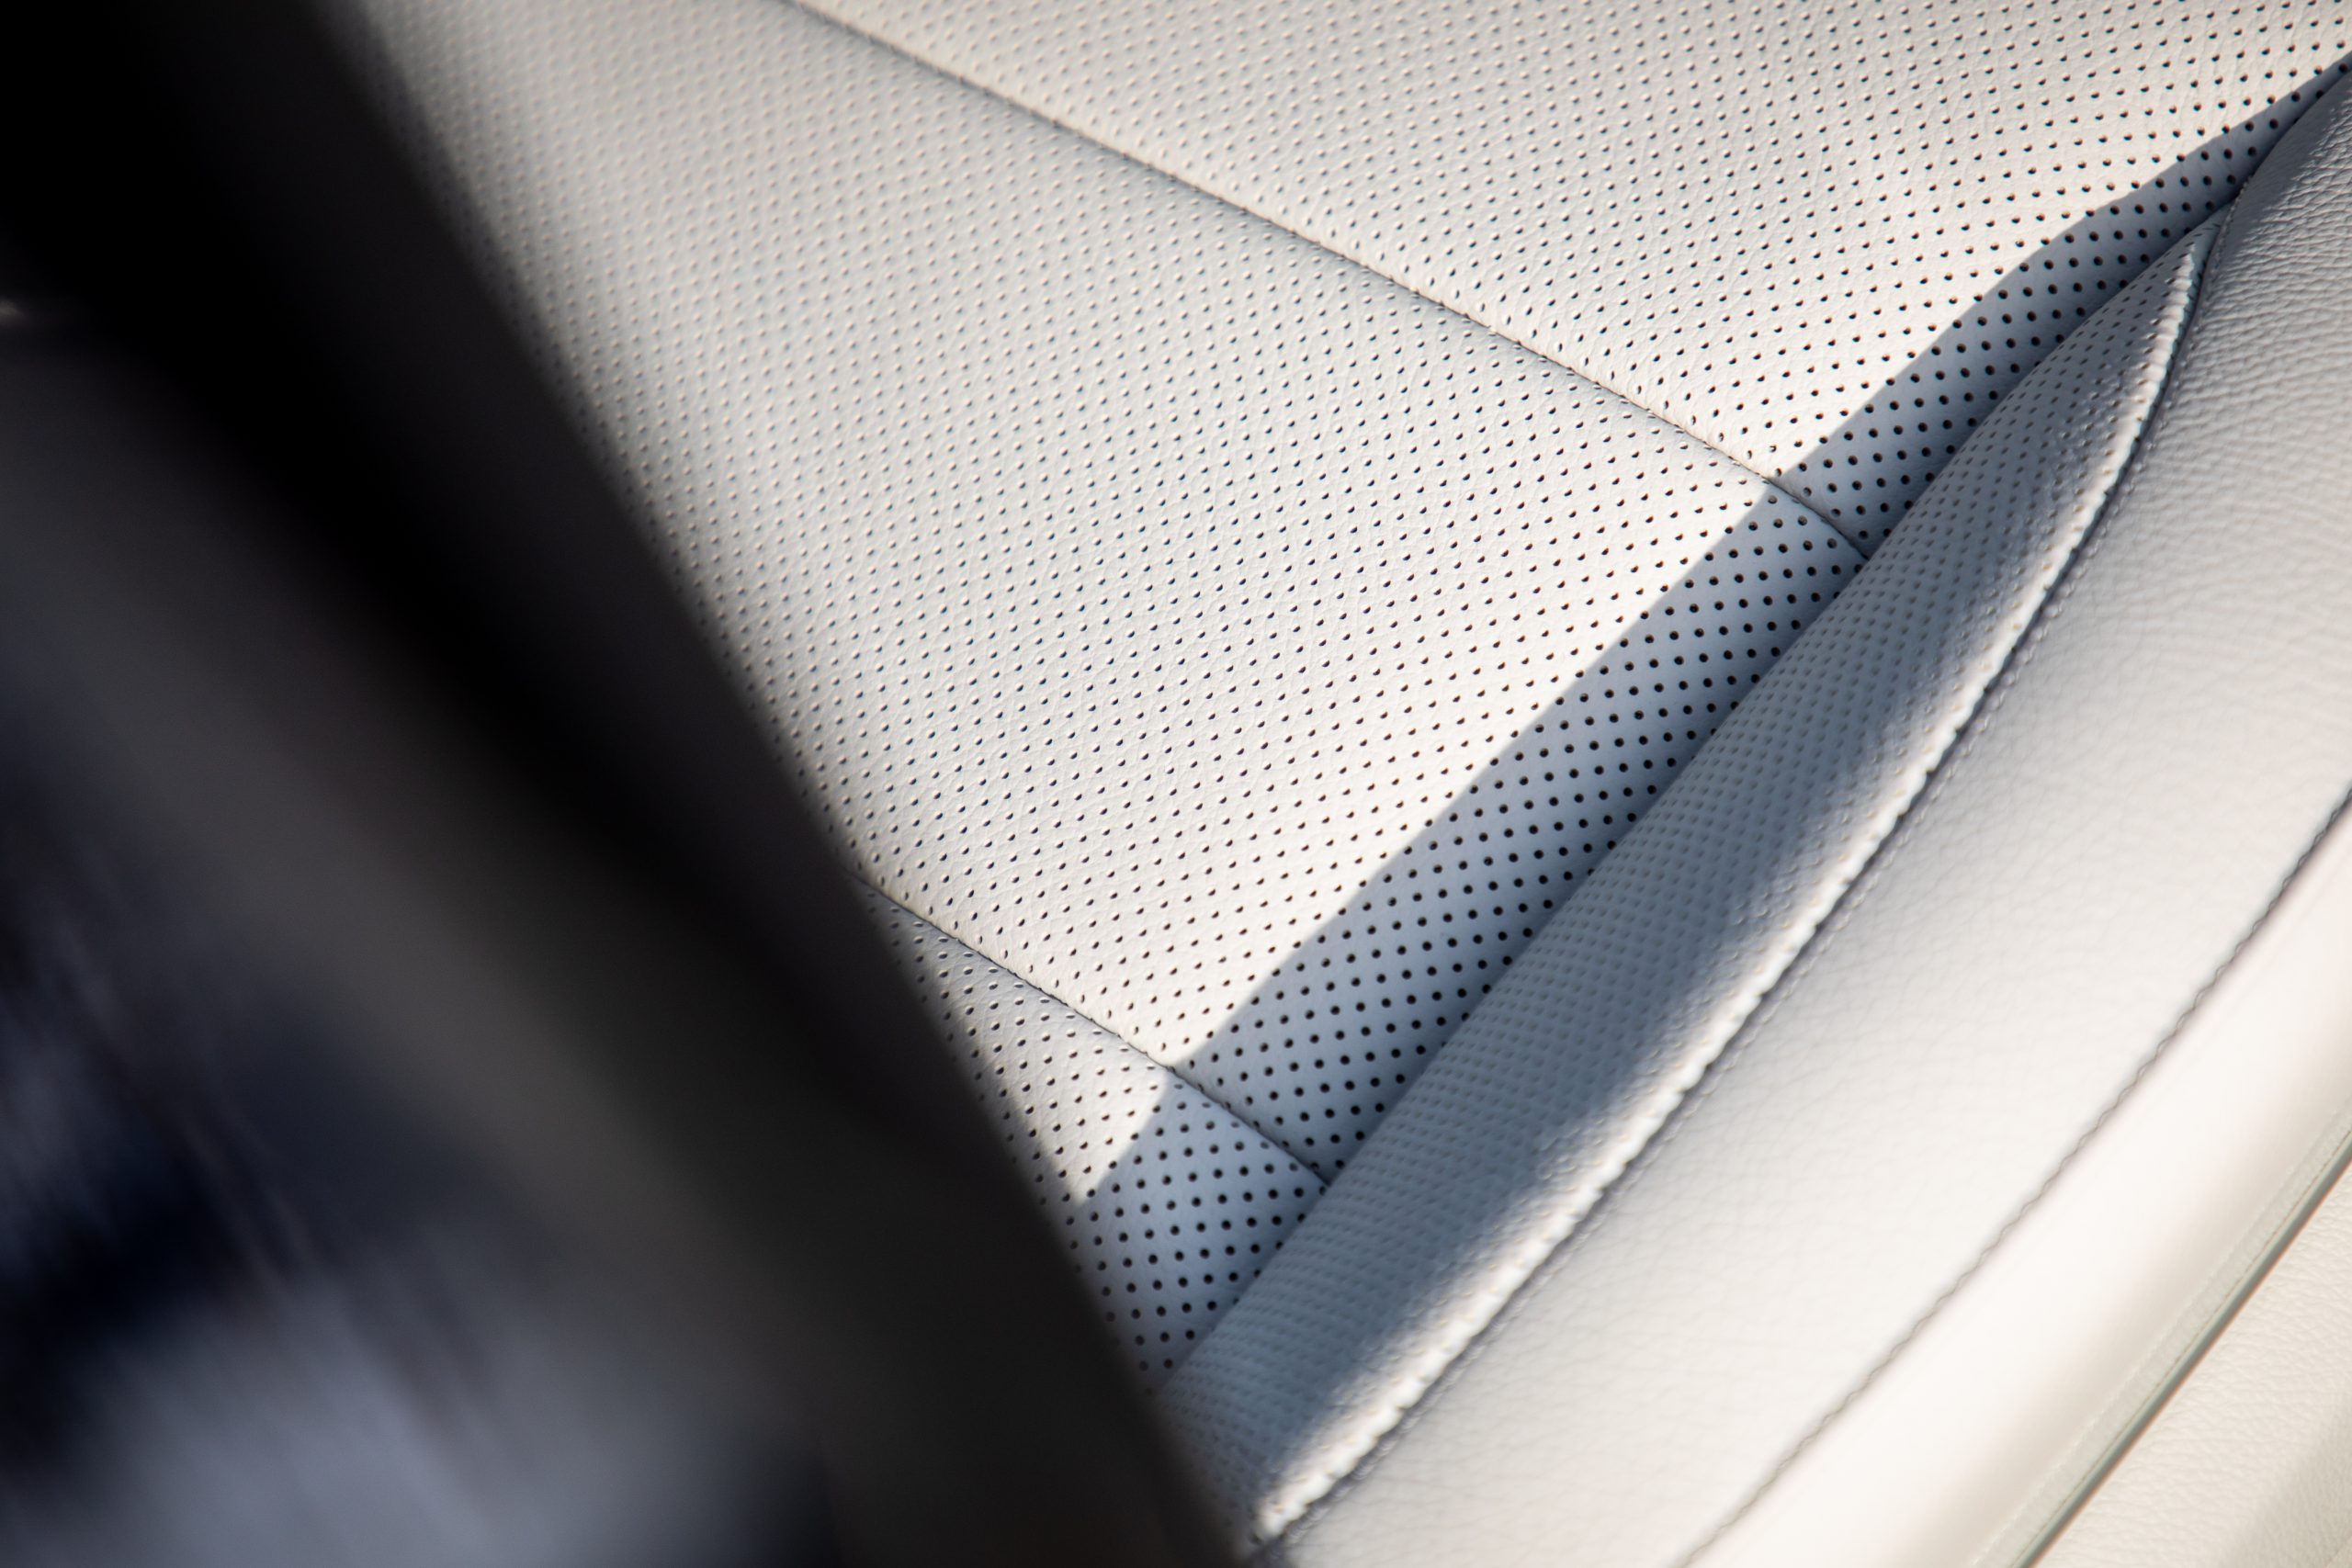 2021 Mercedes Benz E 450 4MATIC leather detail